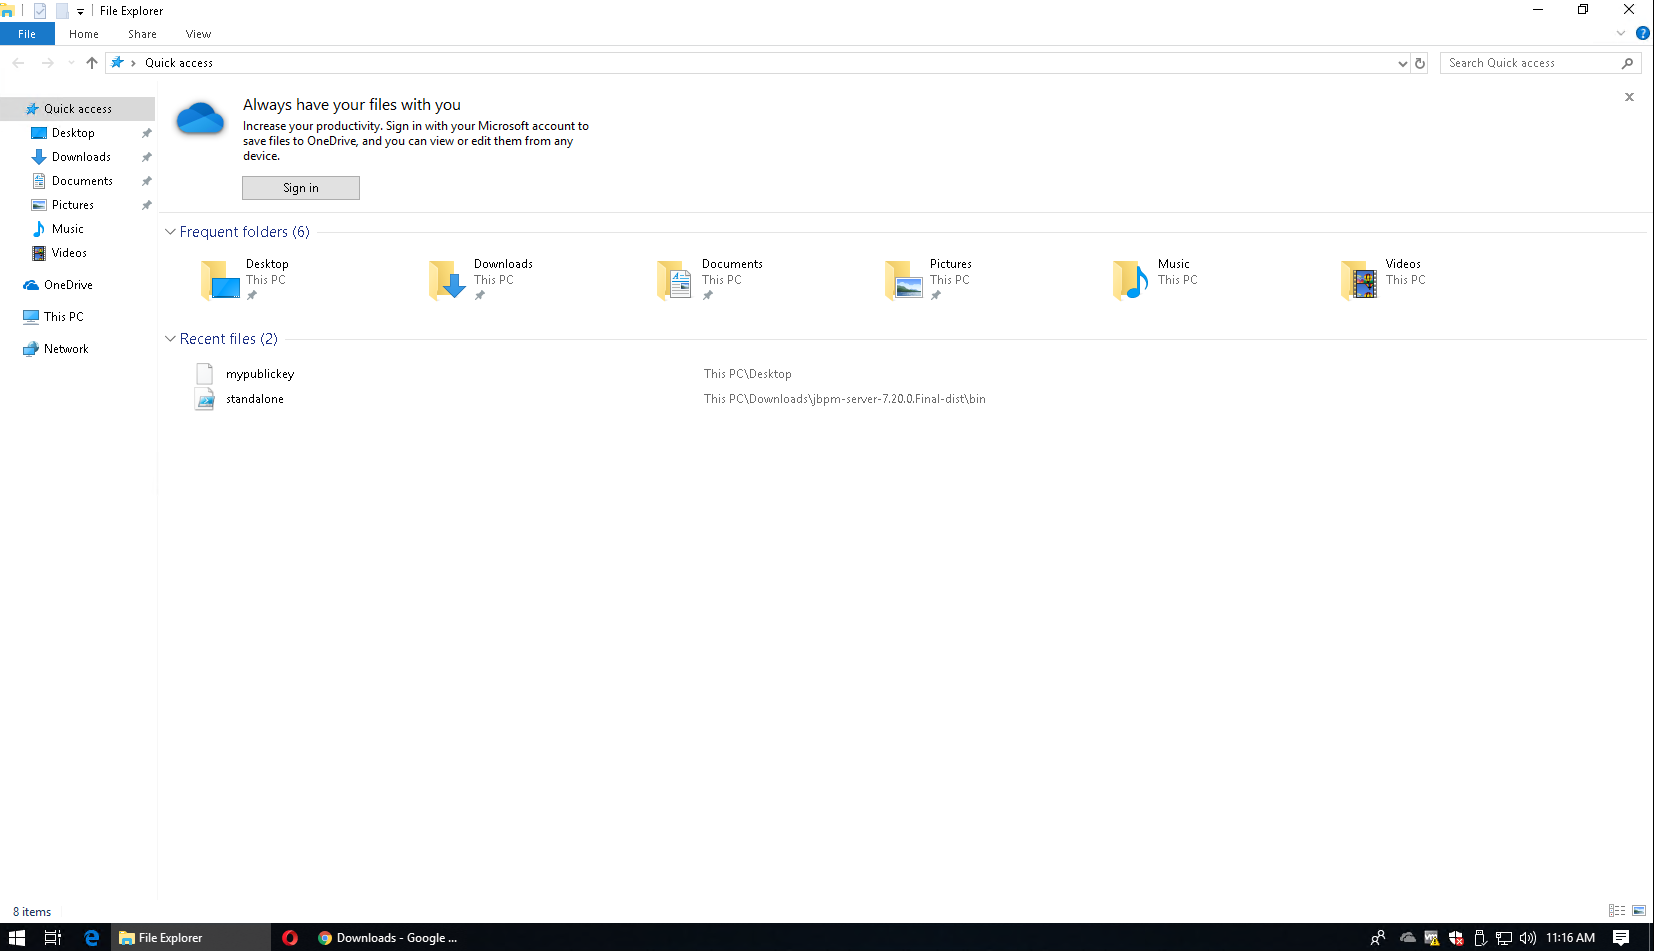 Windows File Explorer GUI